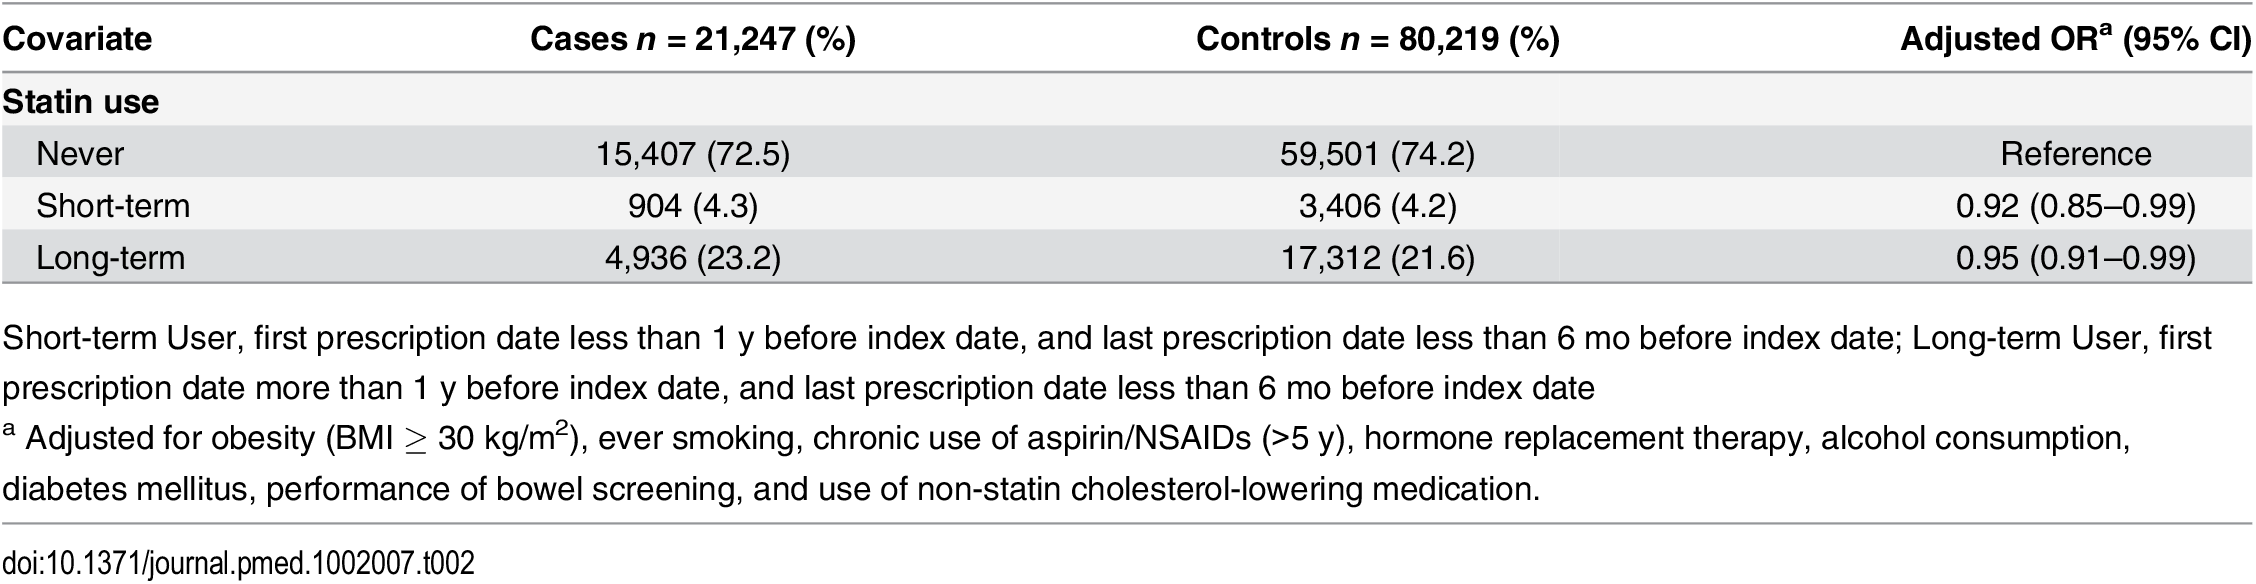 ORs for colorectal cancer risk in statin users relative to nonusers.